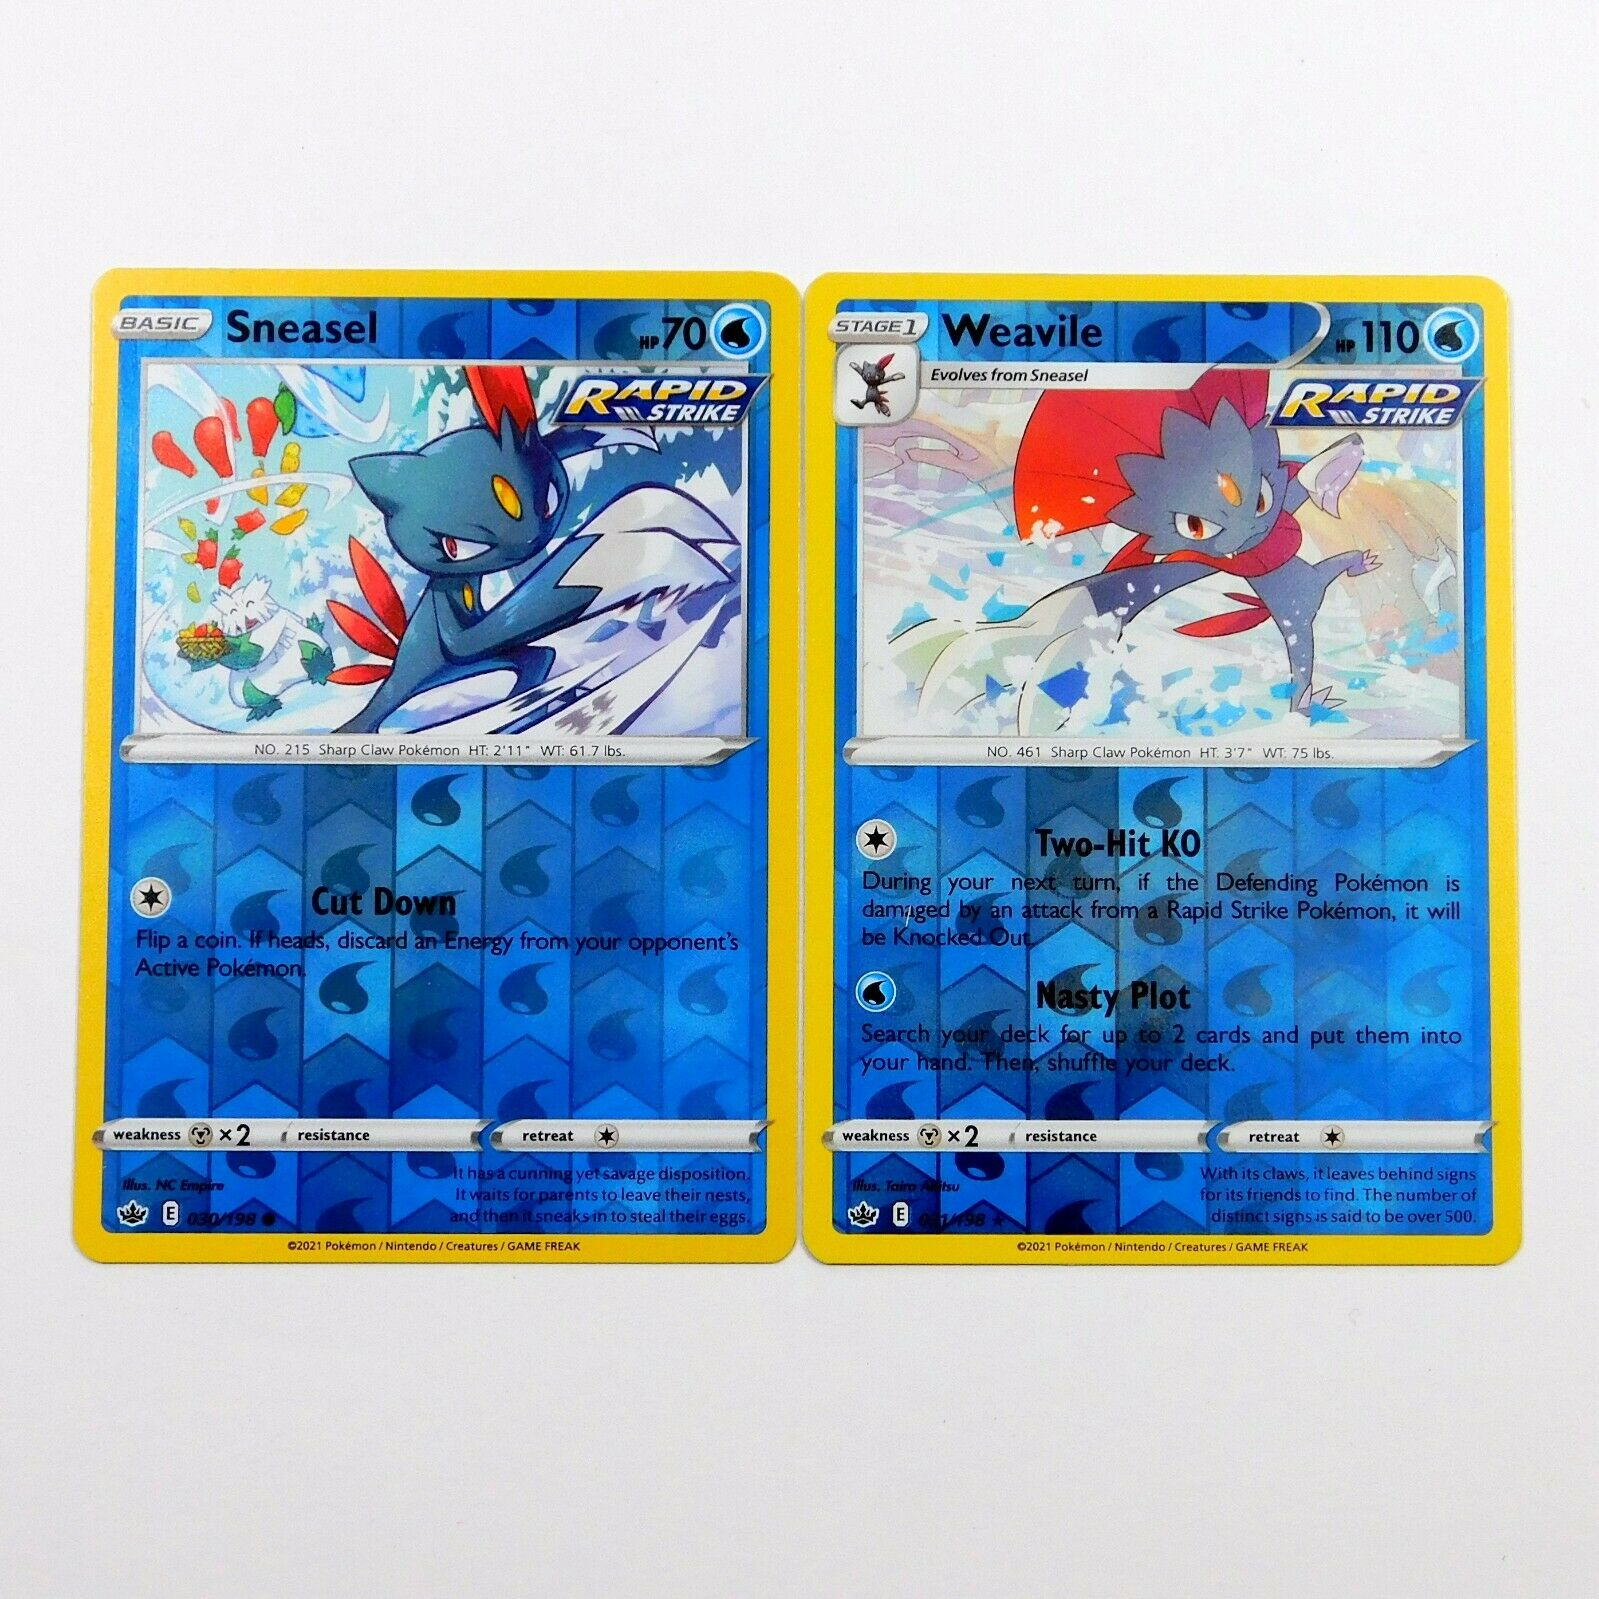 Weavile 031/198 - Sneasel 030/198 Reverse Holo Chilling Reign Pokemon Cards NM/M